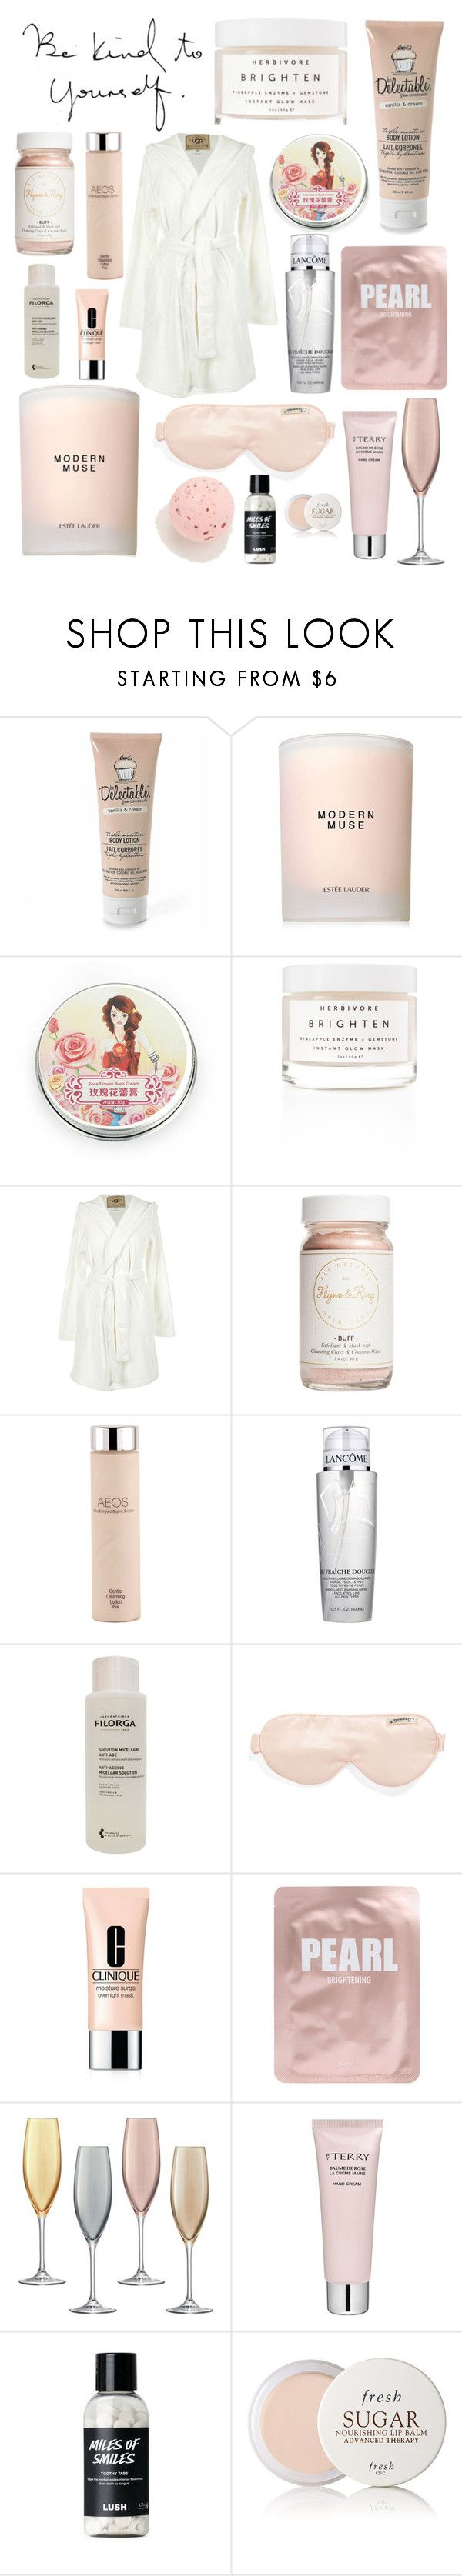 """Treat Yourself"" by sopranochg ❤ liked on Polyvore featuring beauty, Be Delectable, Estée Lauder, Herbivore, UGG Australia, Flynn&King, AEOS, Lancôme, Filorga and Branché"